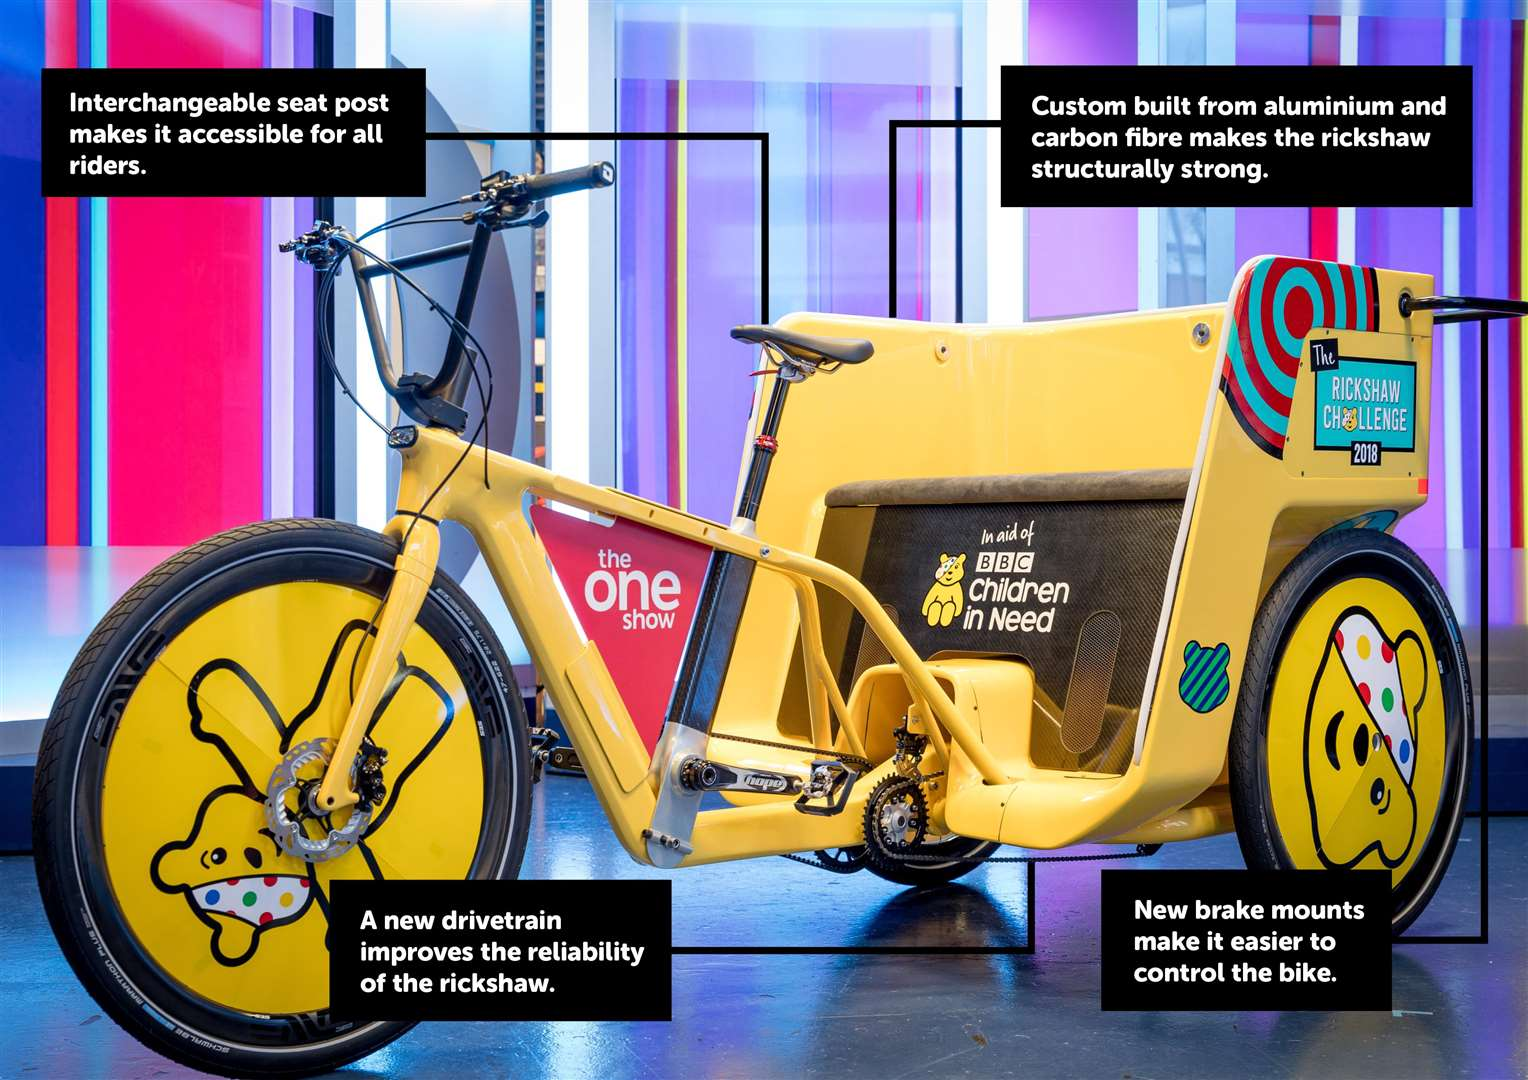 The newly designed rickshaw for the challenge